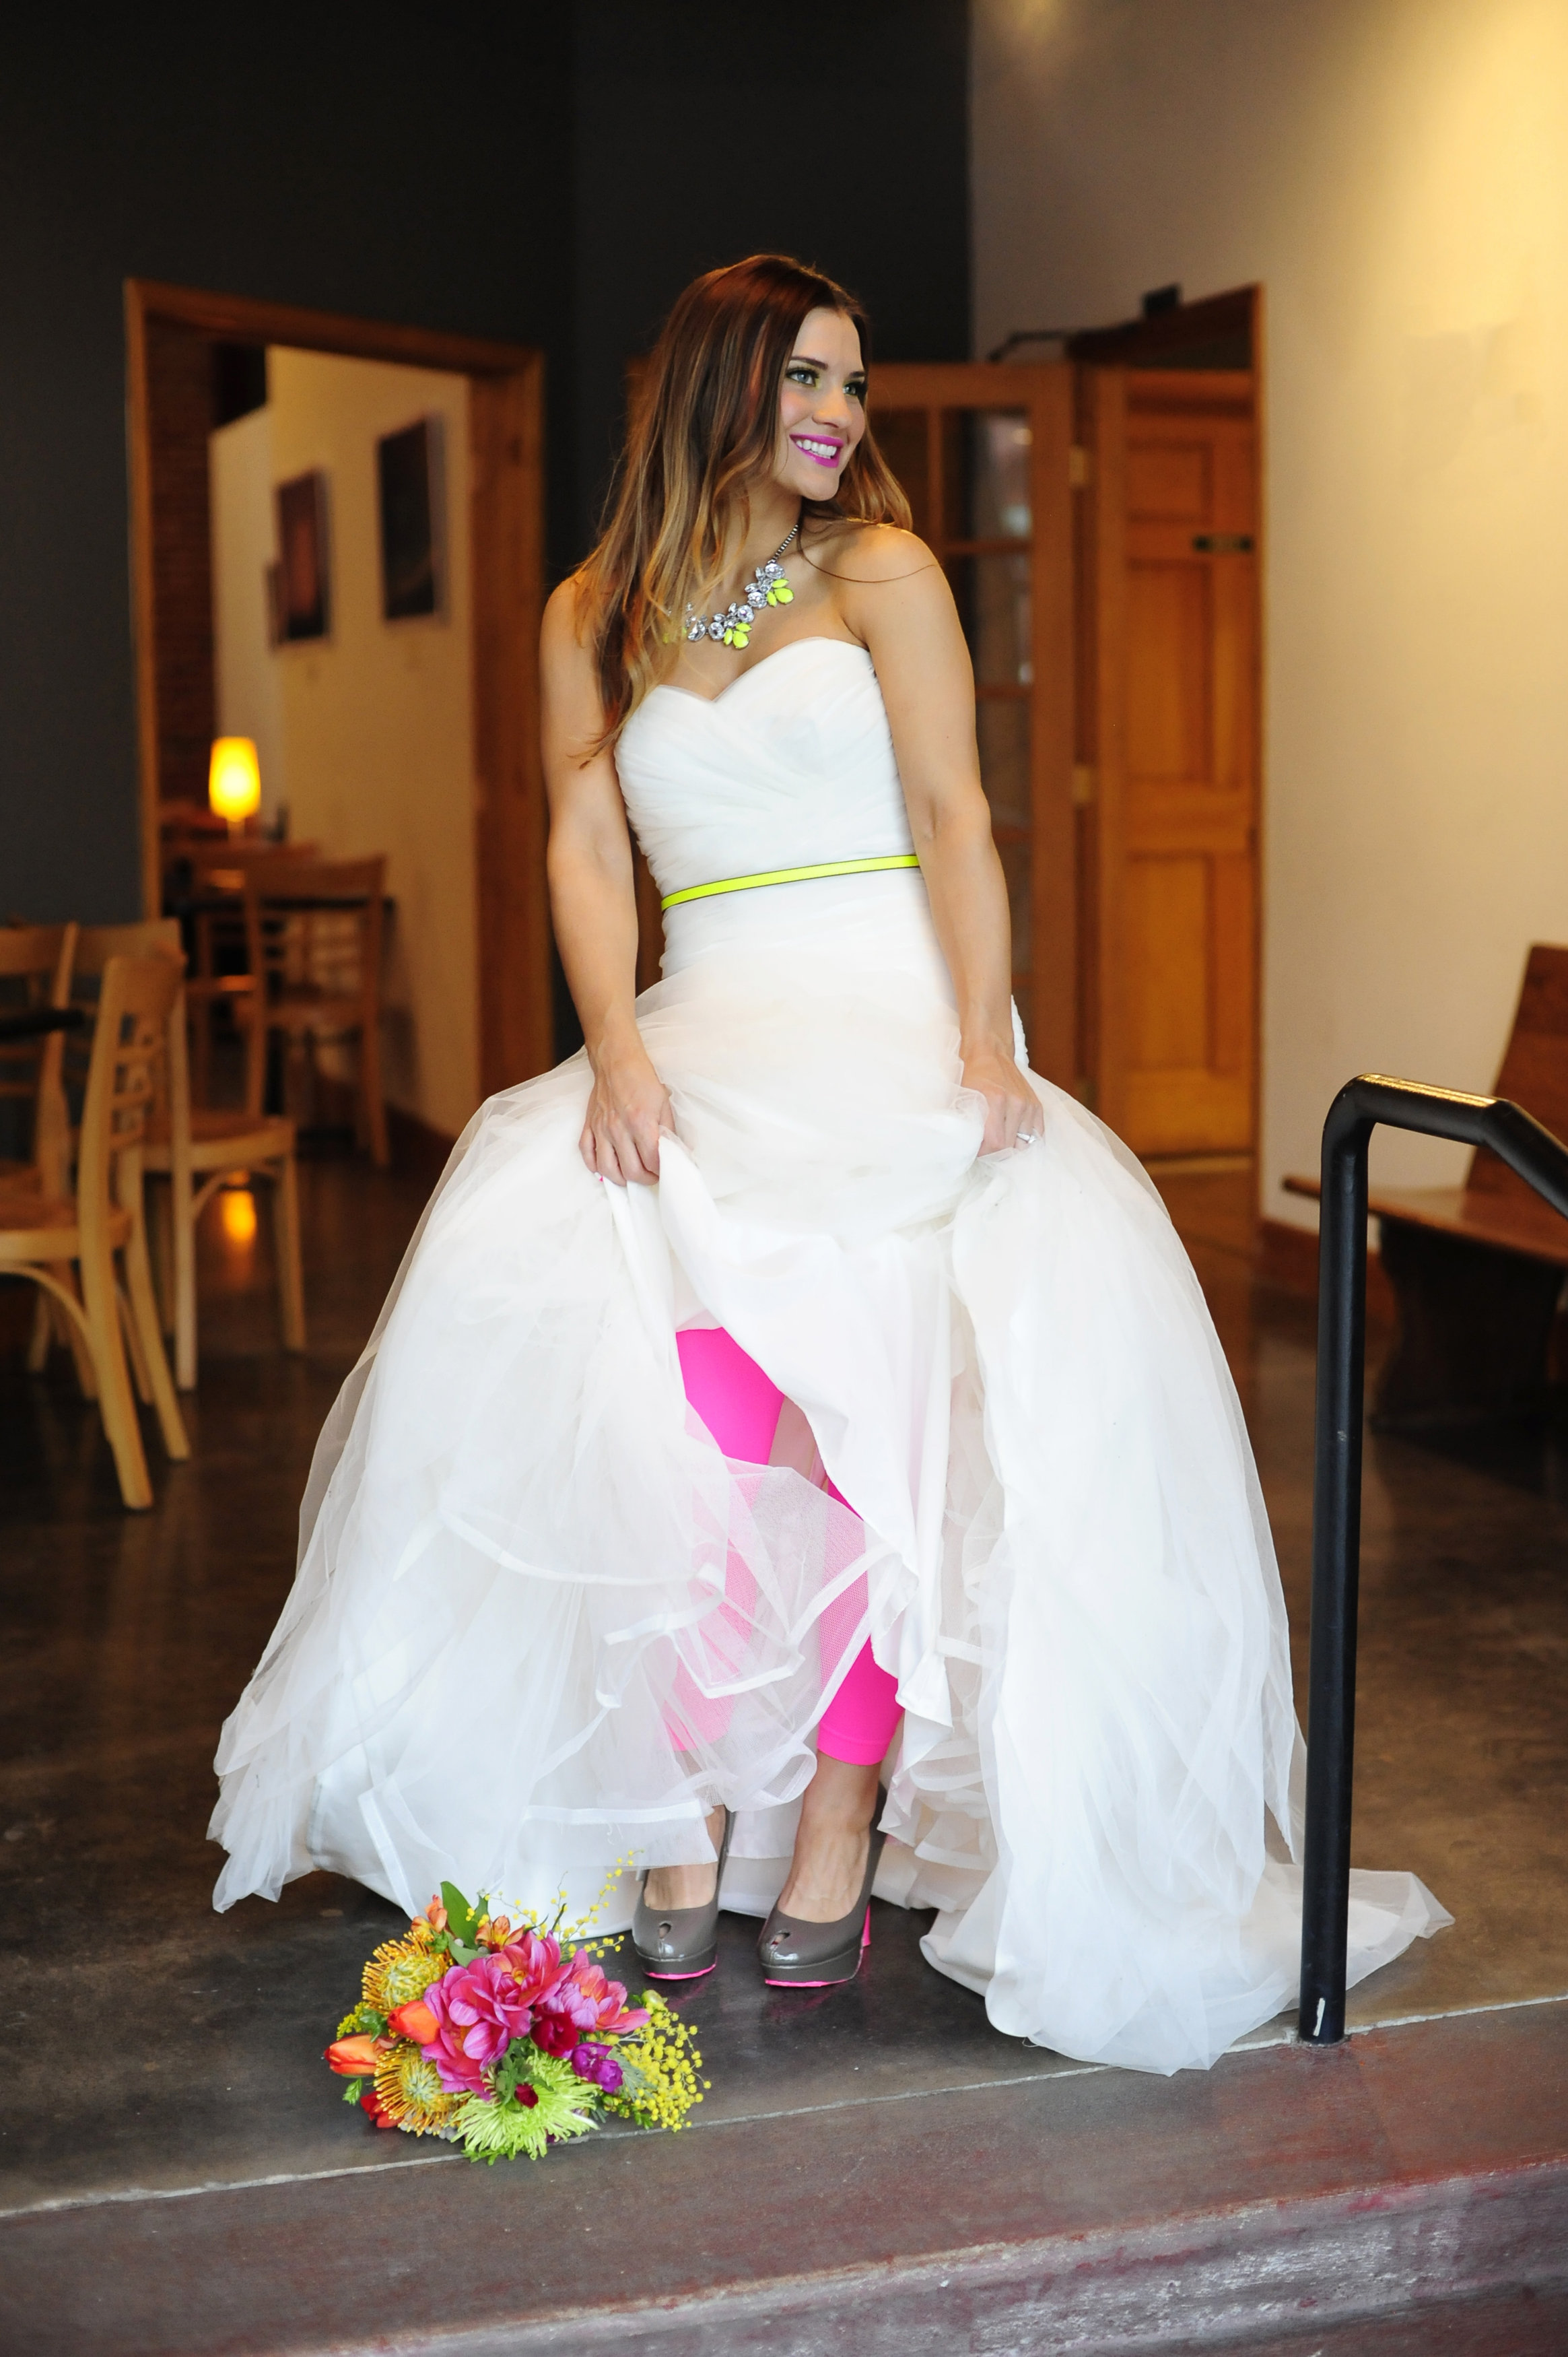 Neon Wedding Inspiration-Neon Submission-0011.jpg